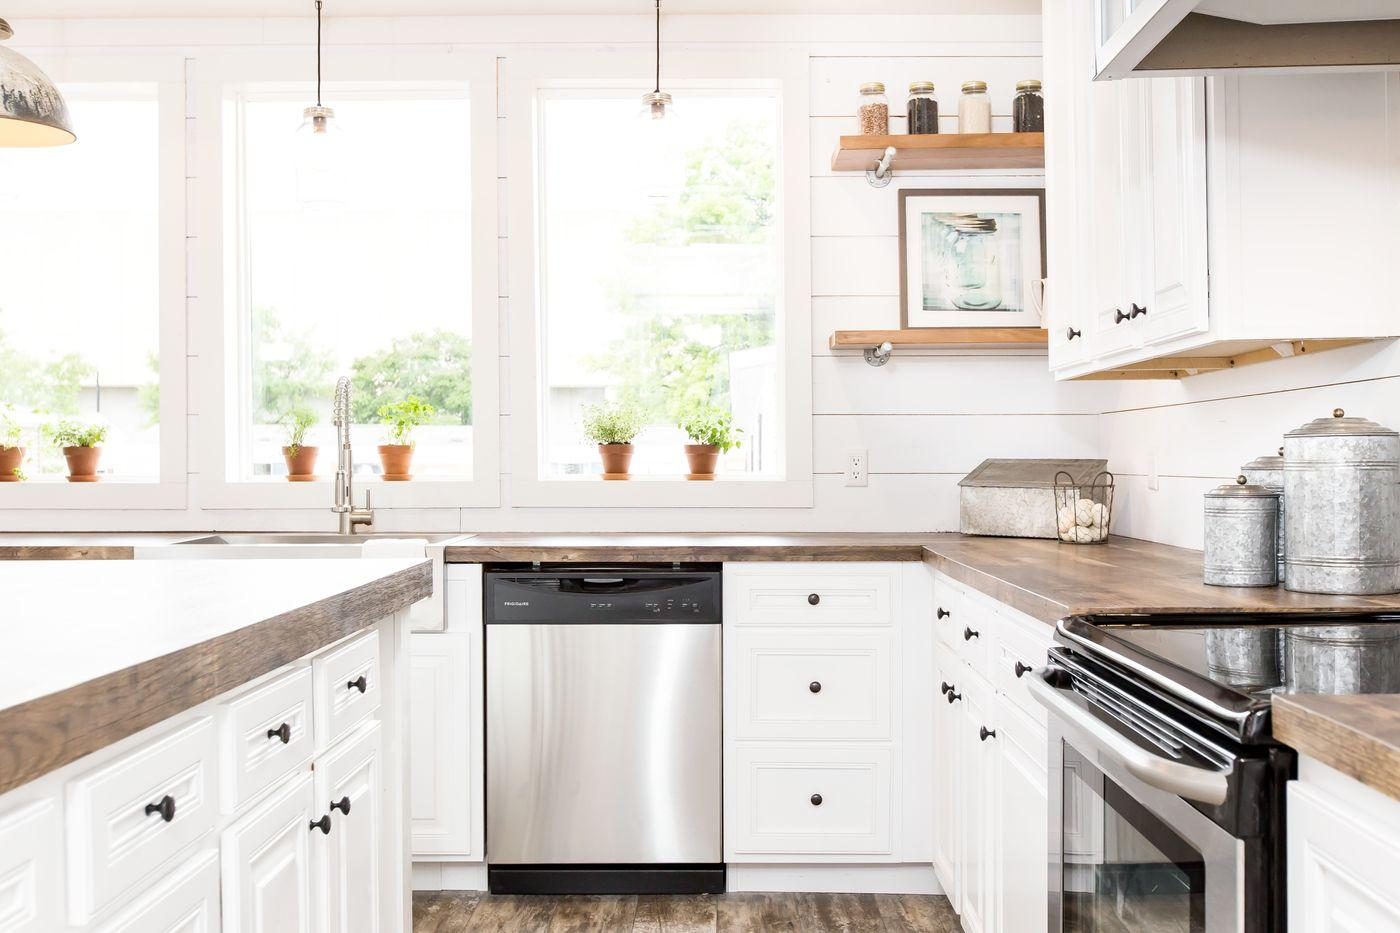 The Lulabelle Kitchen